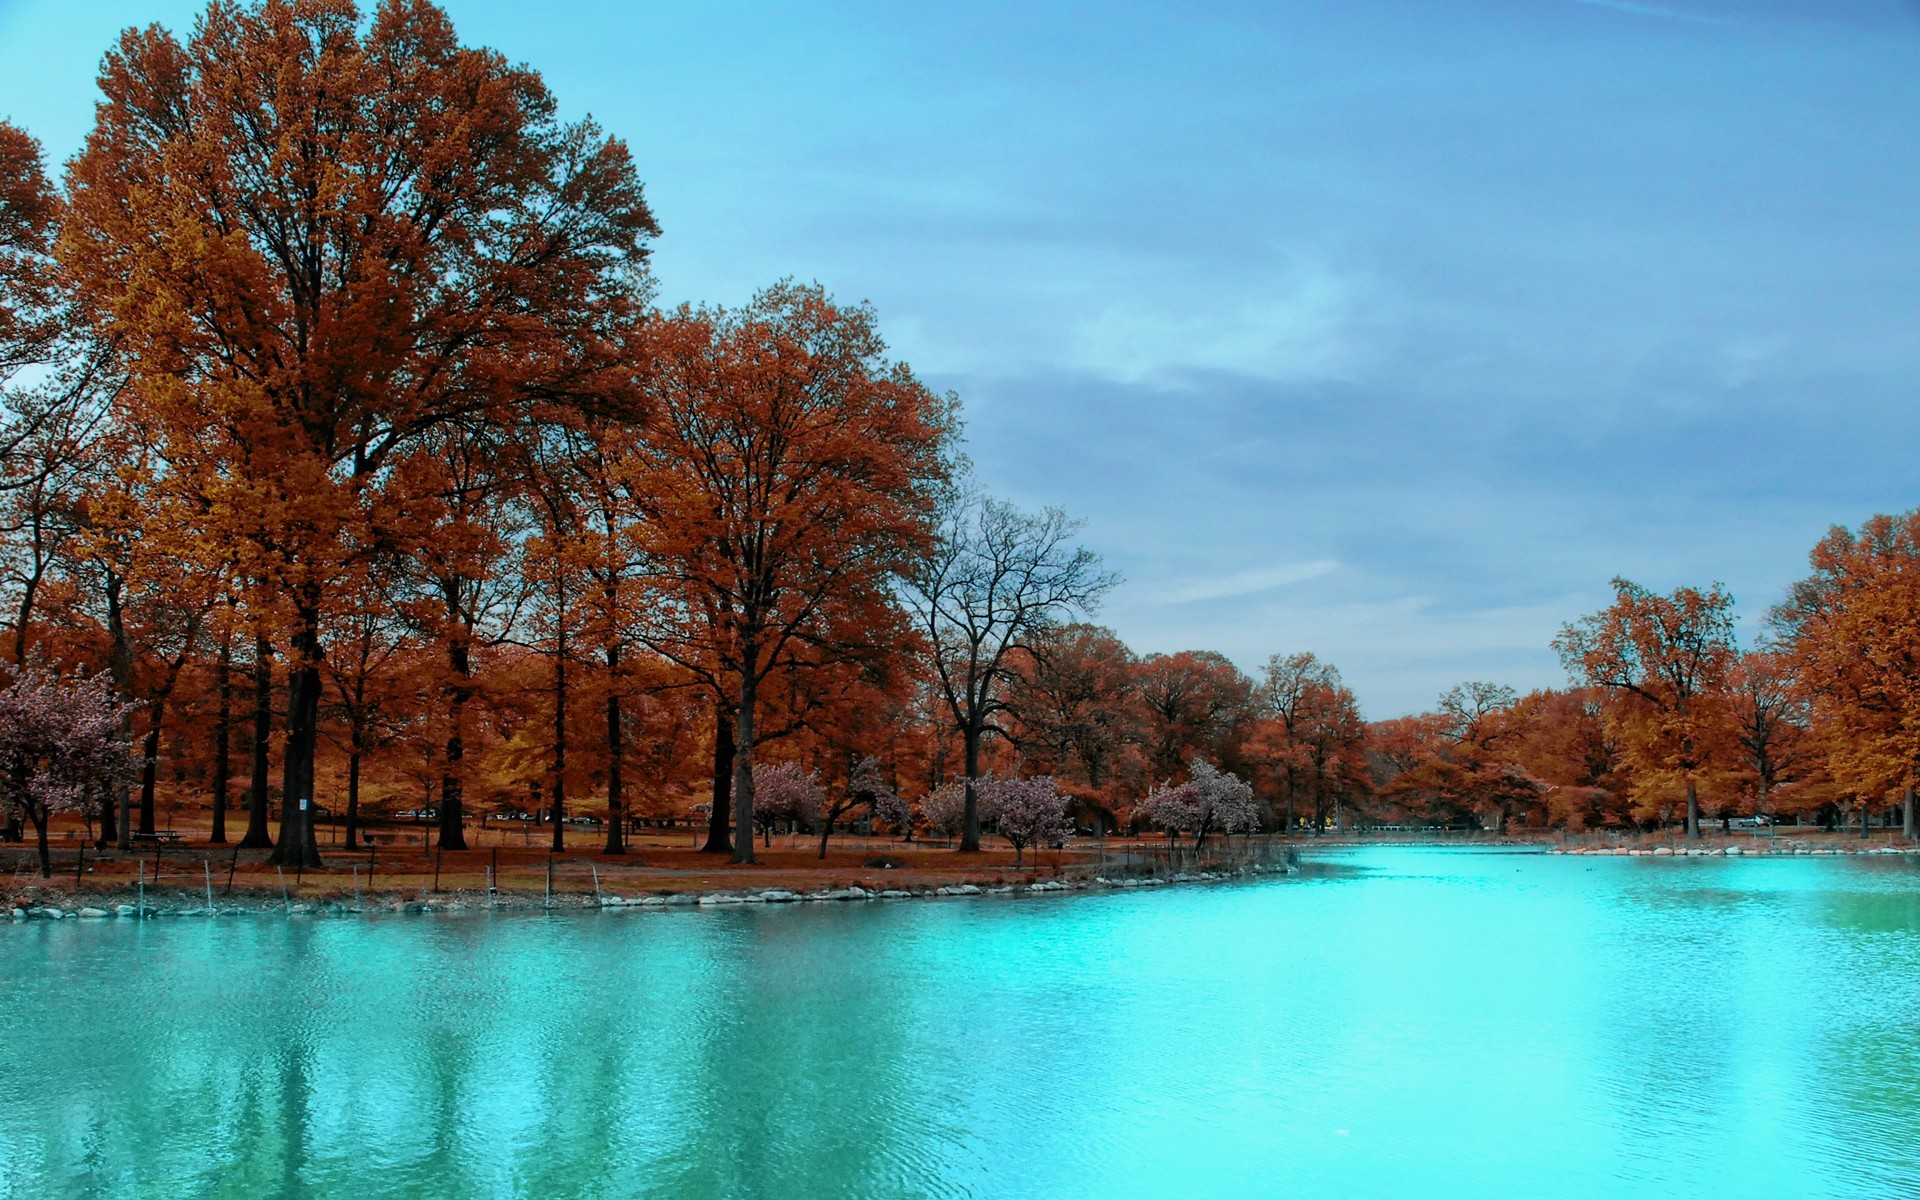 20717 download wallpaper Landscape, Rivers, Trees, Autumn screensavers and pictures for free